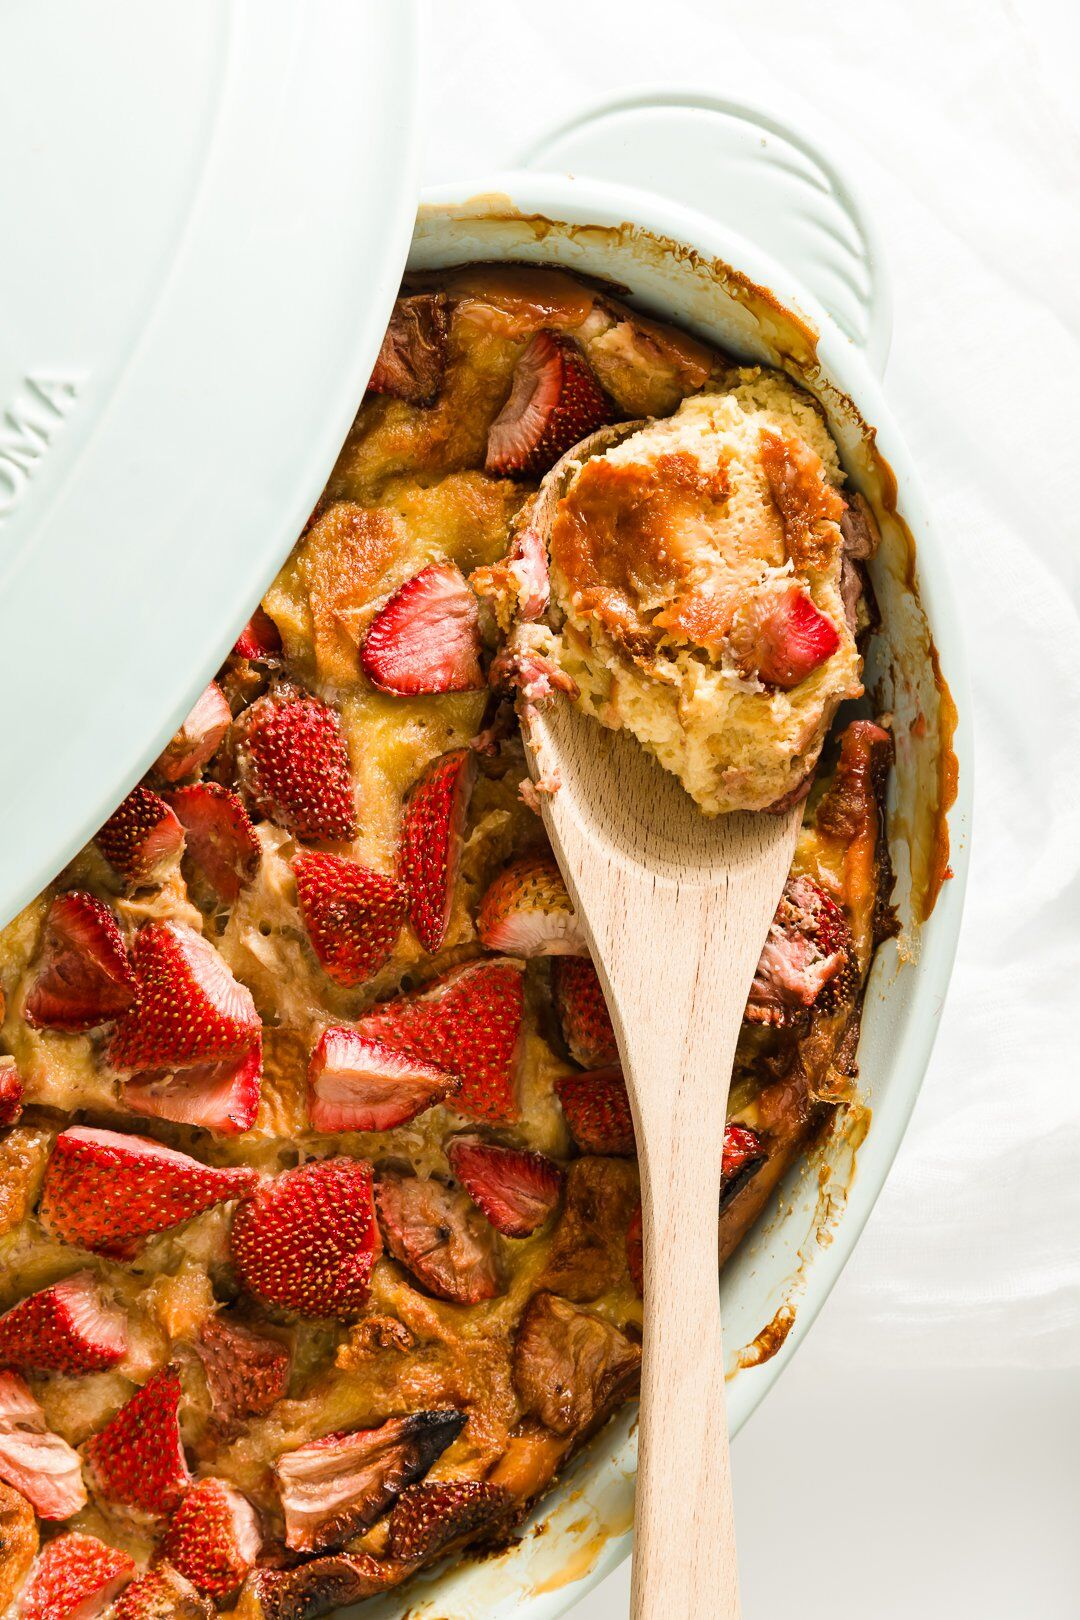 brioche French toast in a casserole dish with some scooped onto a serving spoon